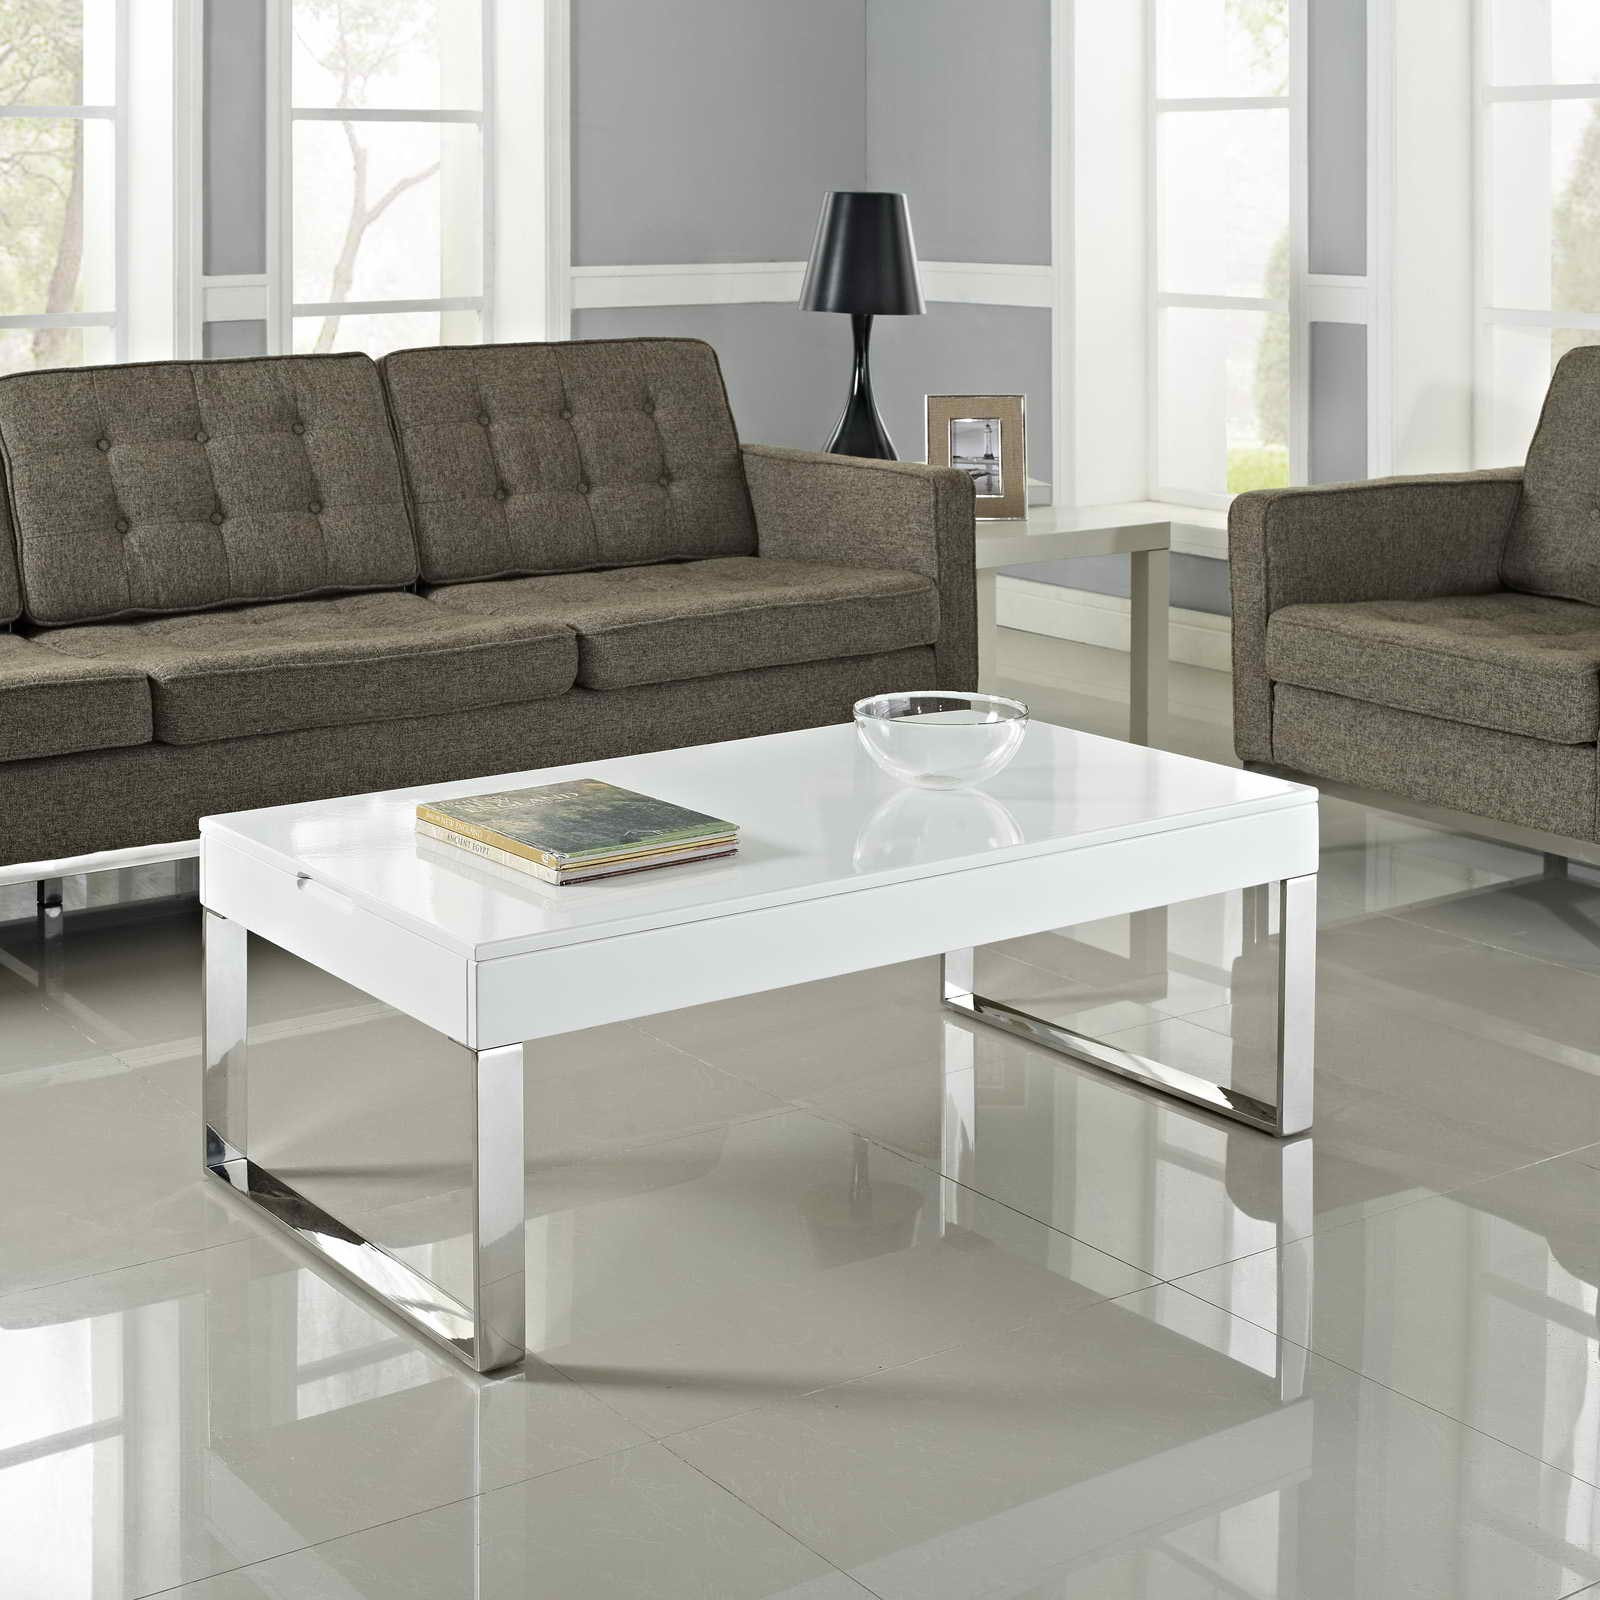 Amazing lucite coffee table ikea homesfeed for White end tables for living room